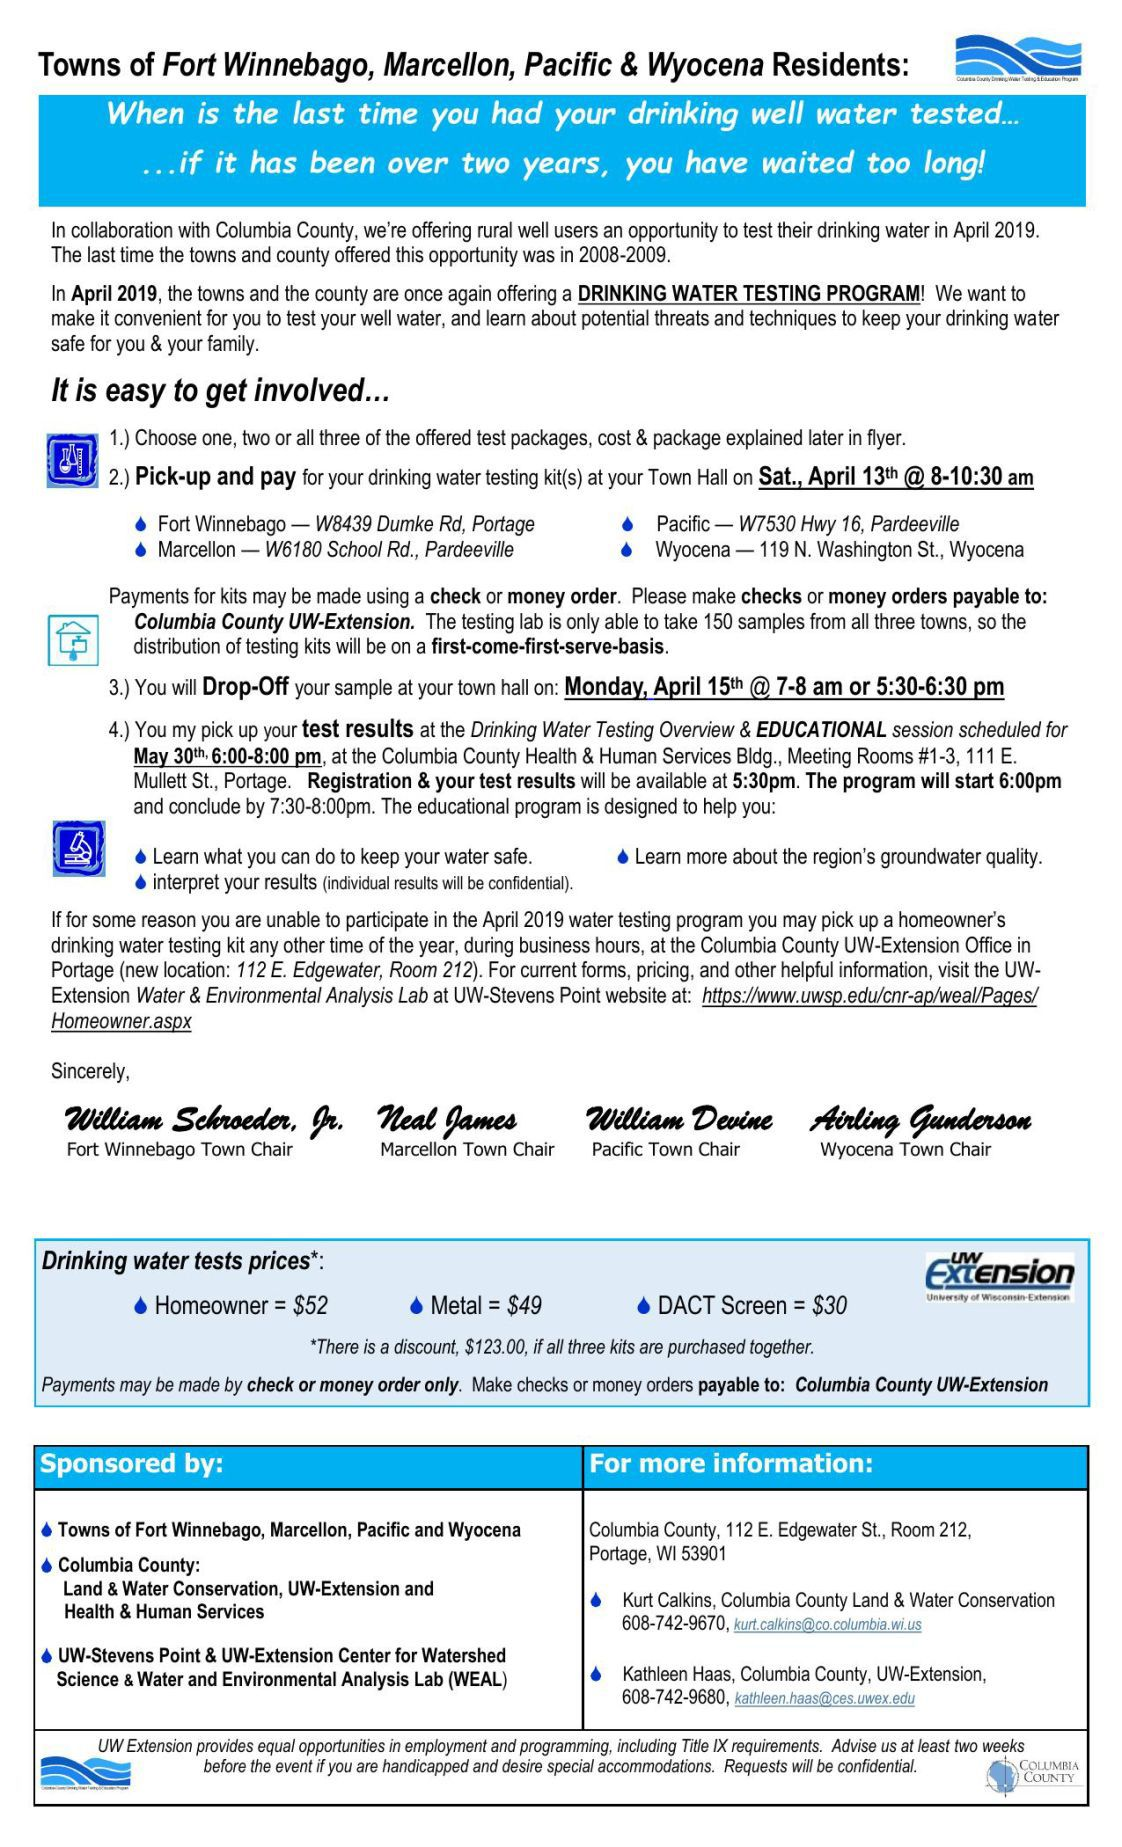 April flyer for water testing kits